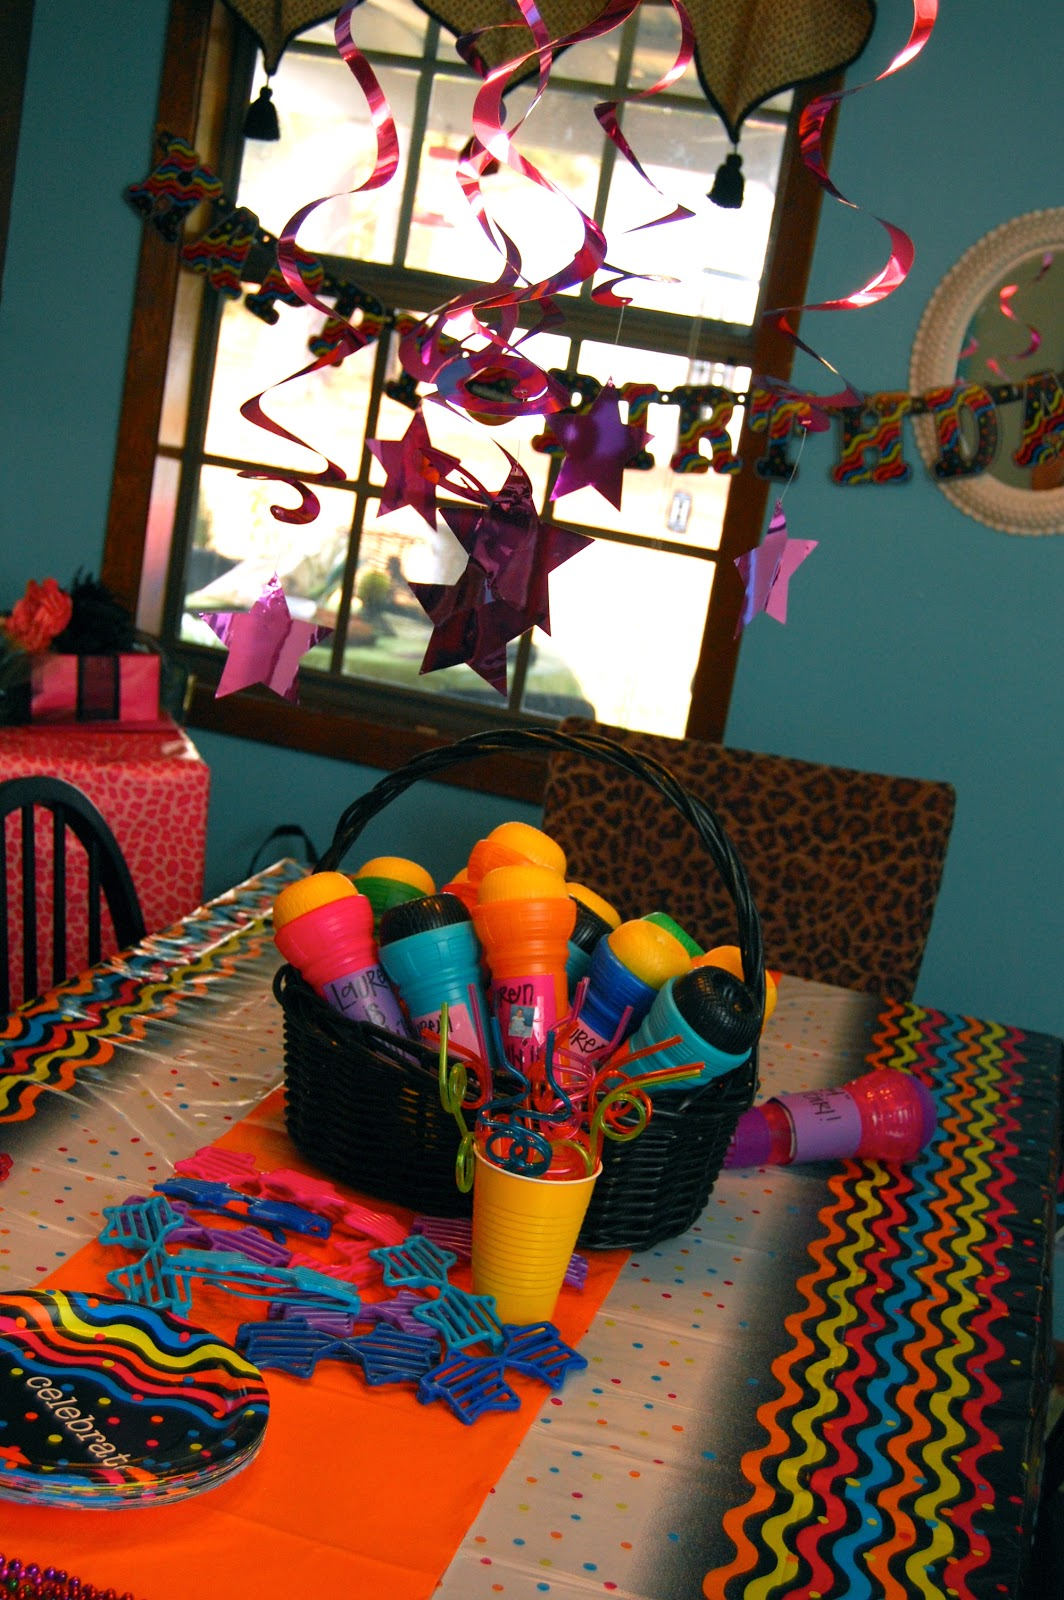 80 Ideas For Contemporary Living Room Designs: The Honey Pot: A Totally 80's Birthday